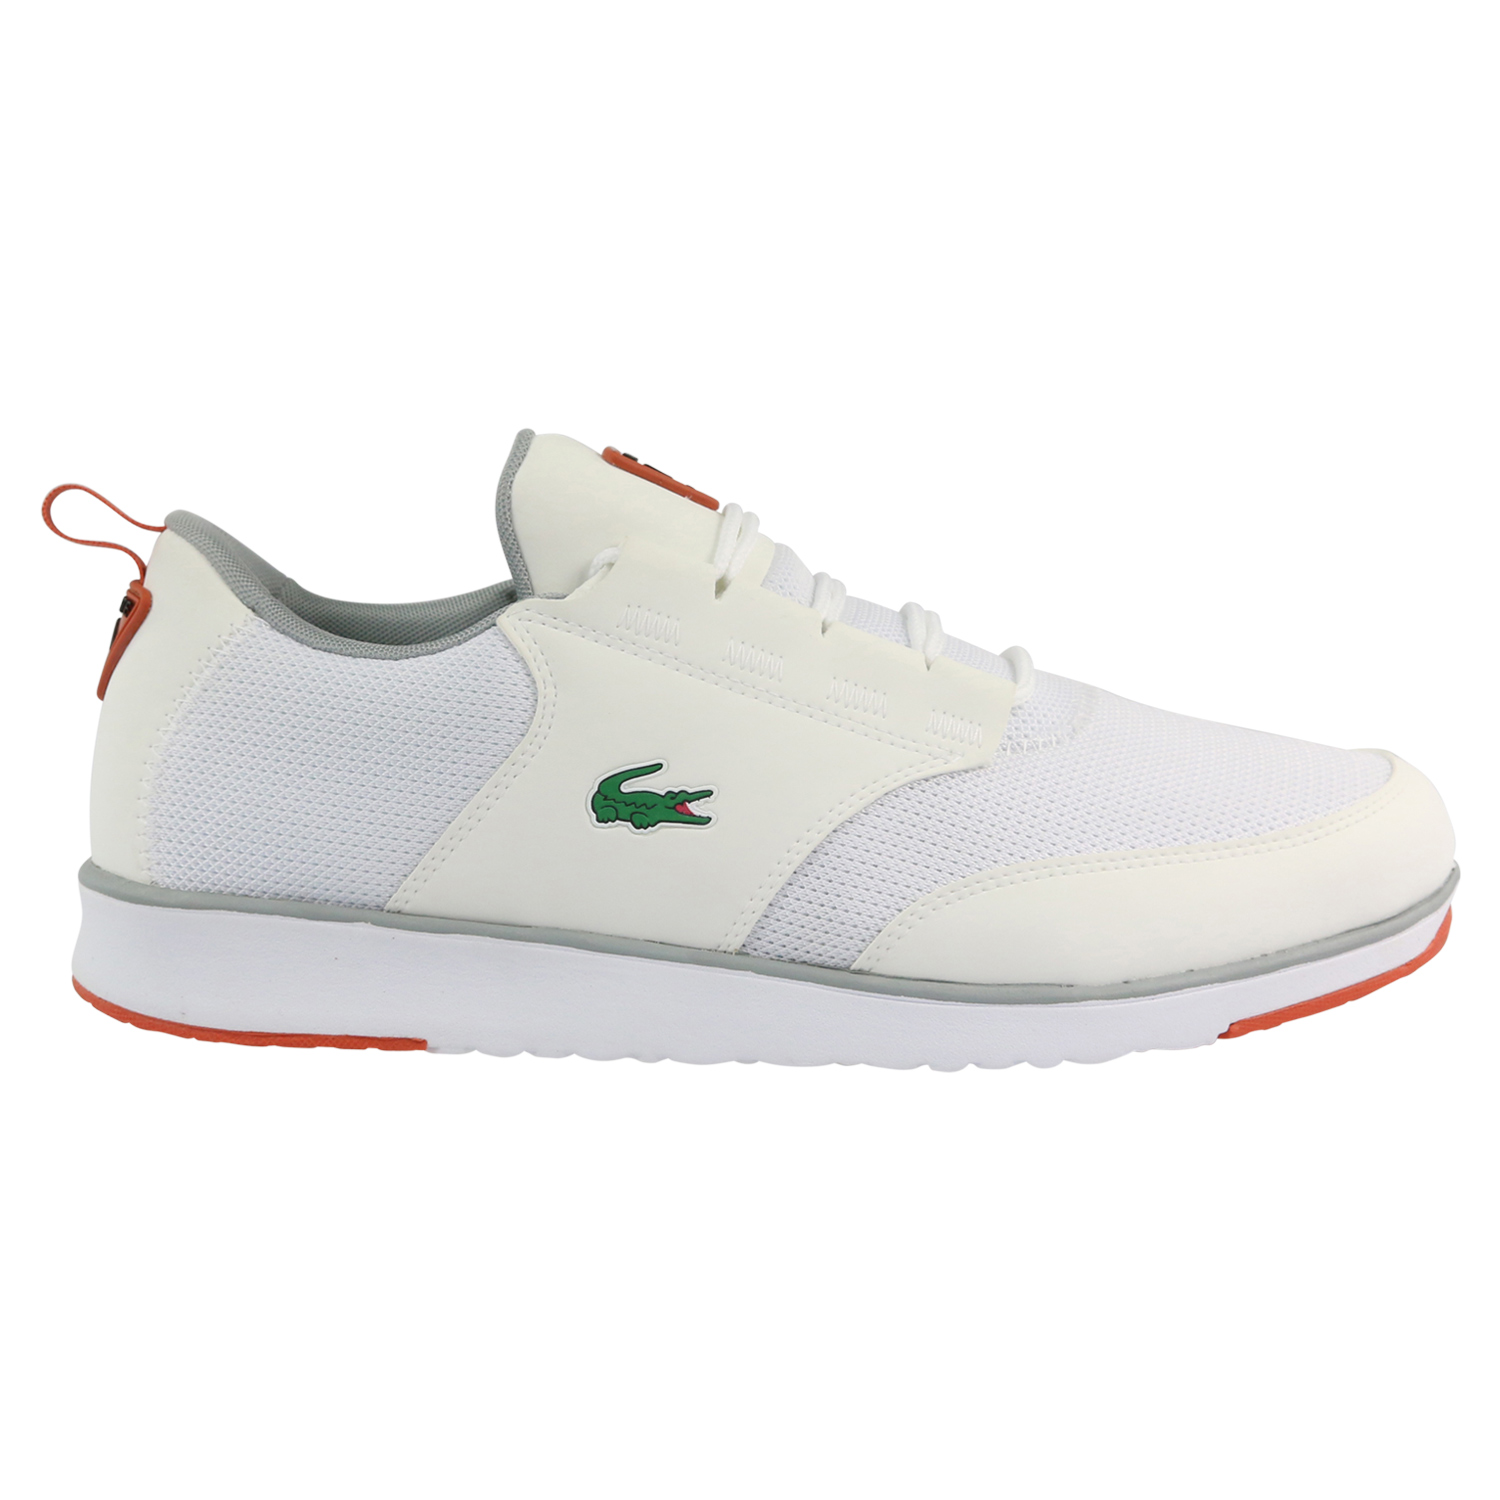 lacoste schuhe turnschuhe sneaker herren ebay. Black Bedroom Furniture Sets. Home Design Ideas